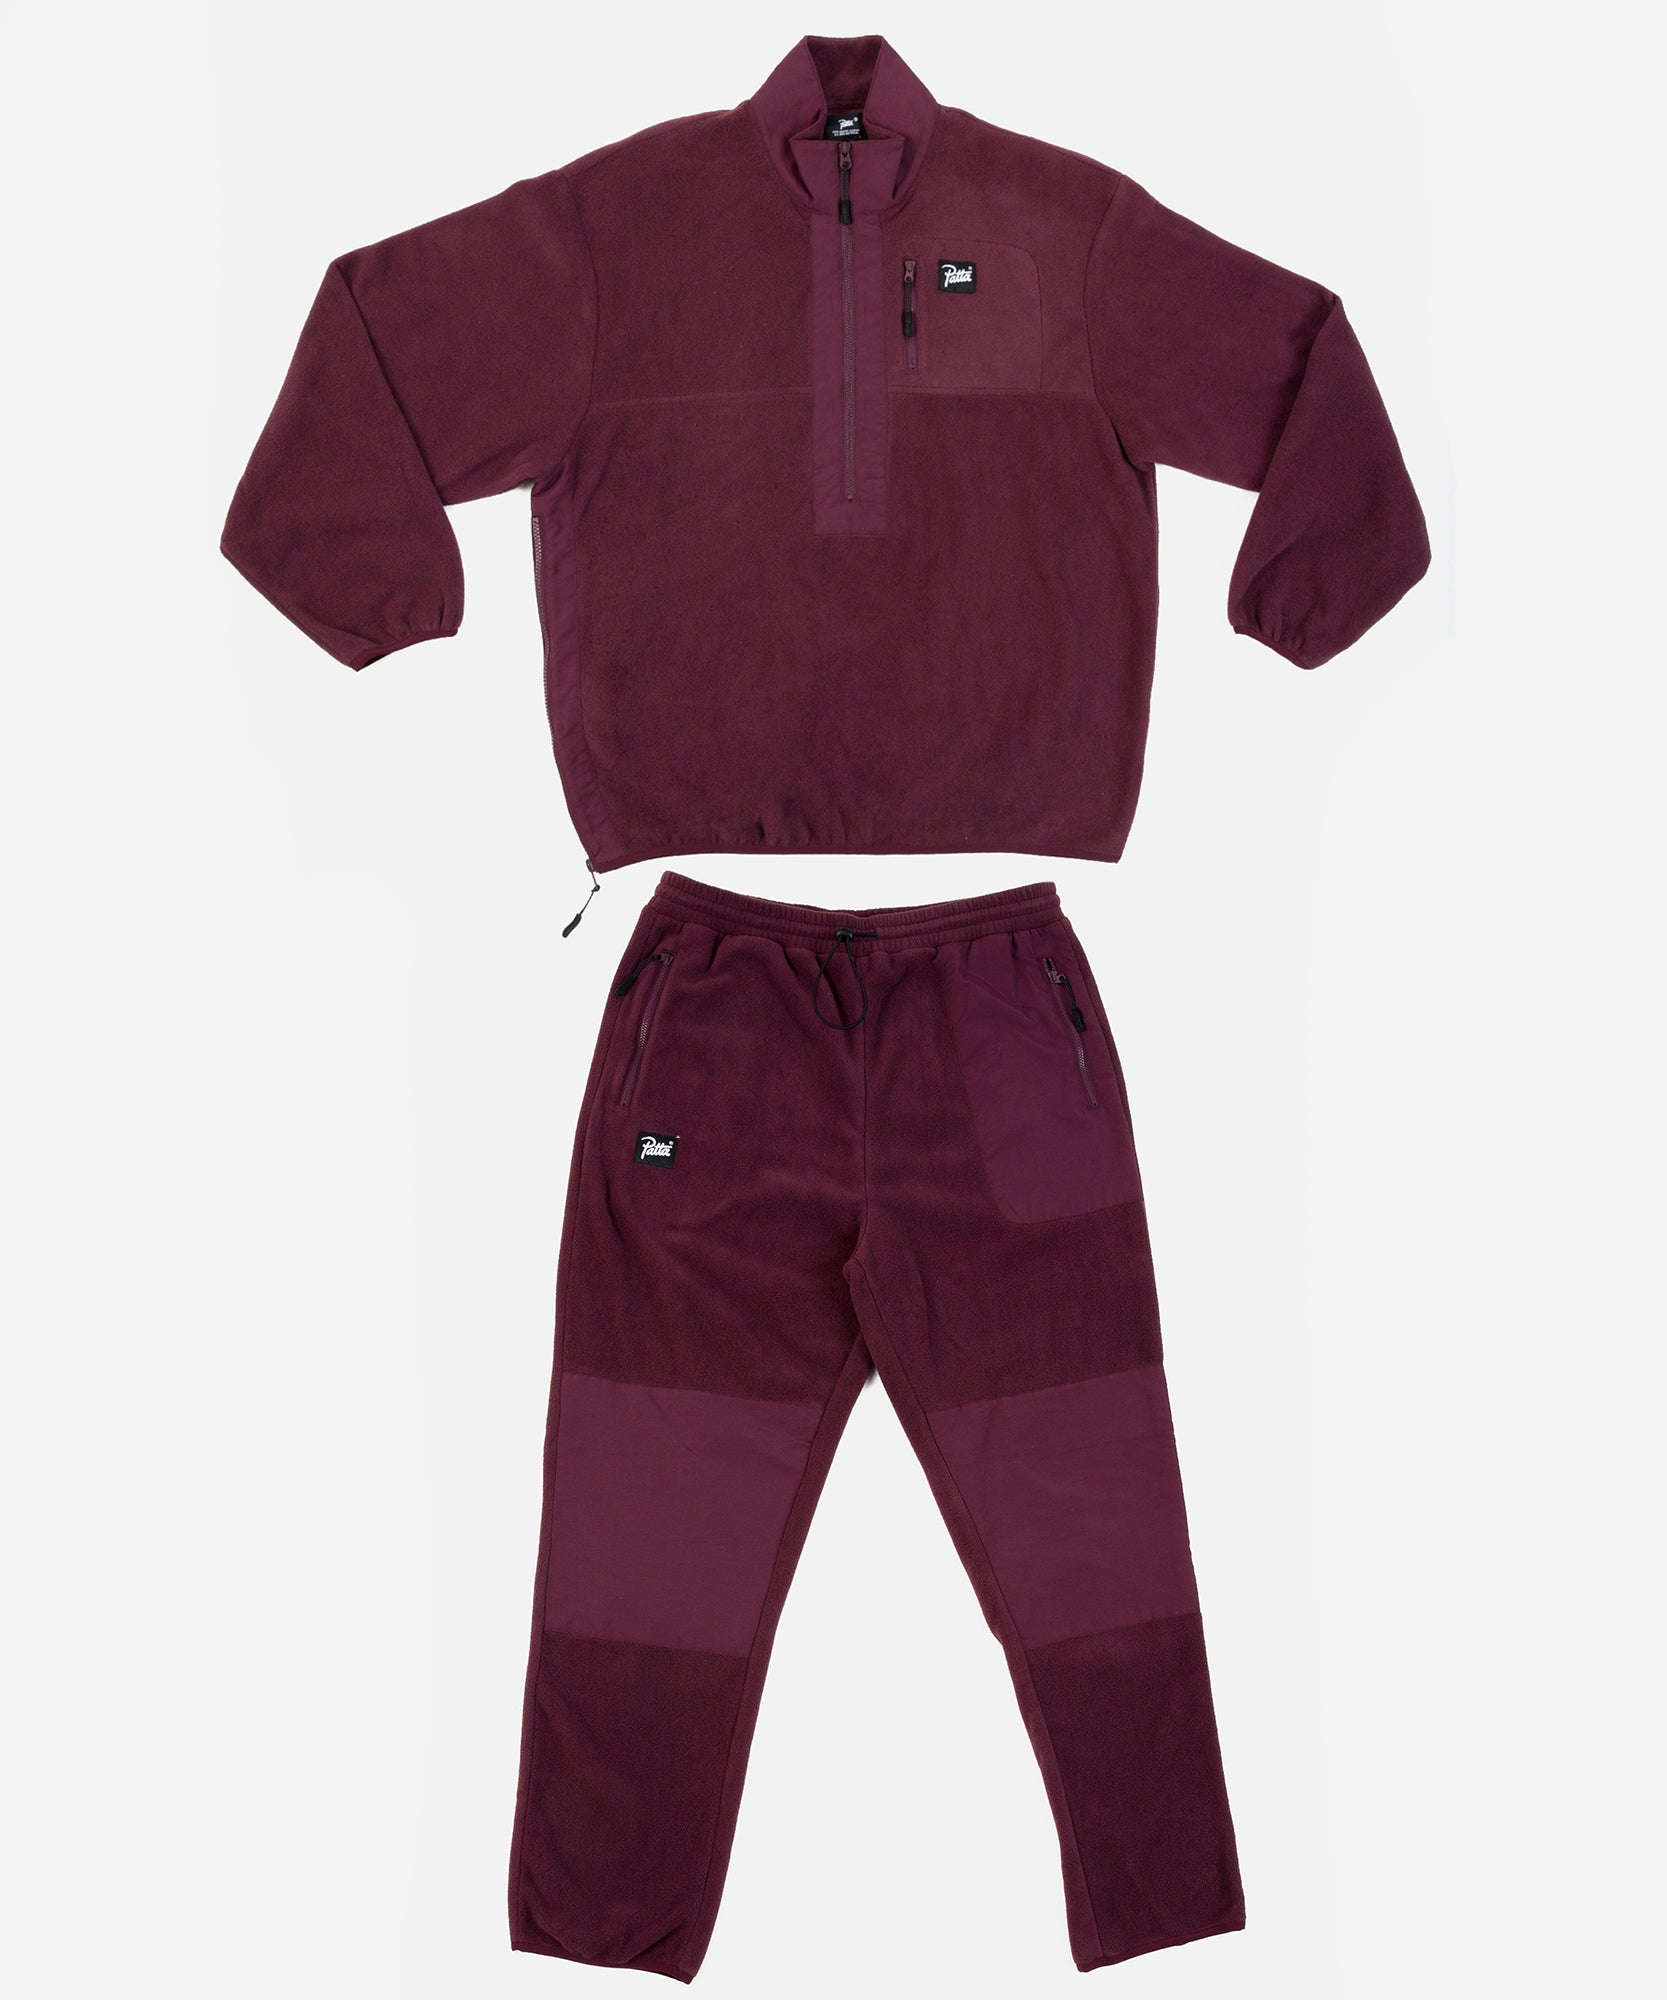 Patta Polartec Fleece Tracksuit (Port Royal/Eggplant)